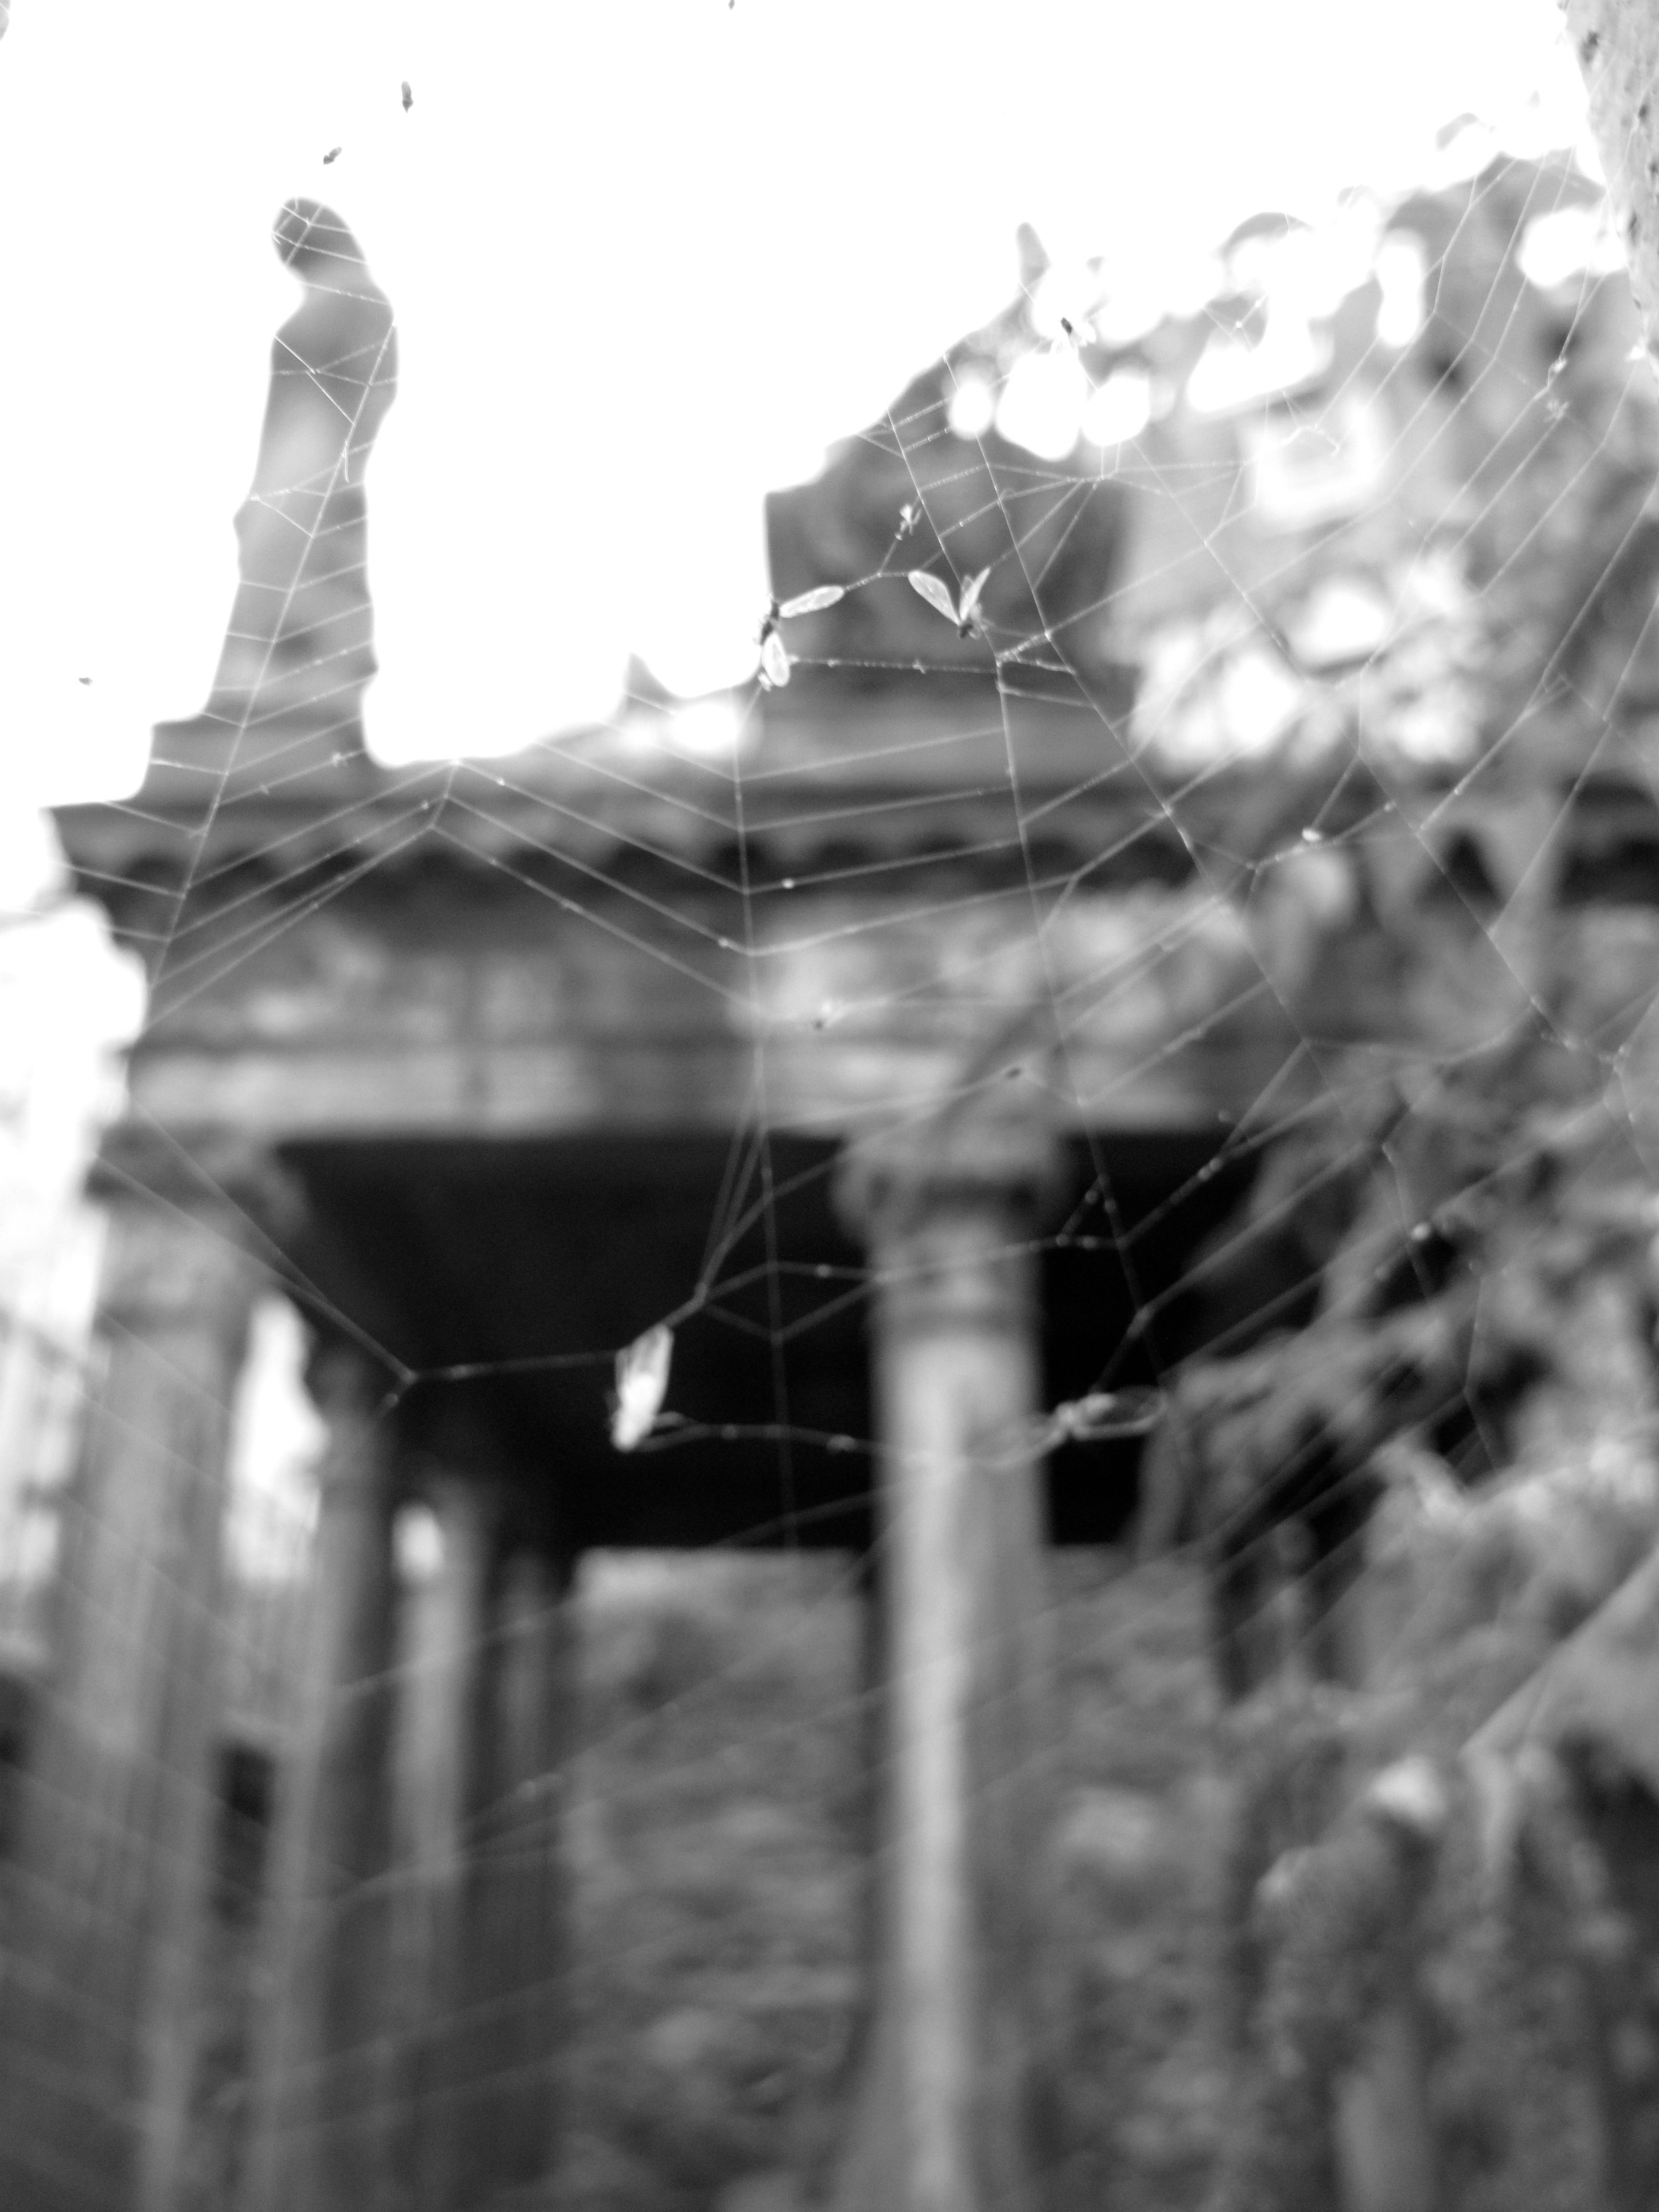 Spider webs and tombs at Greyfriars - black and white photography.